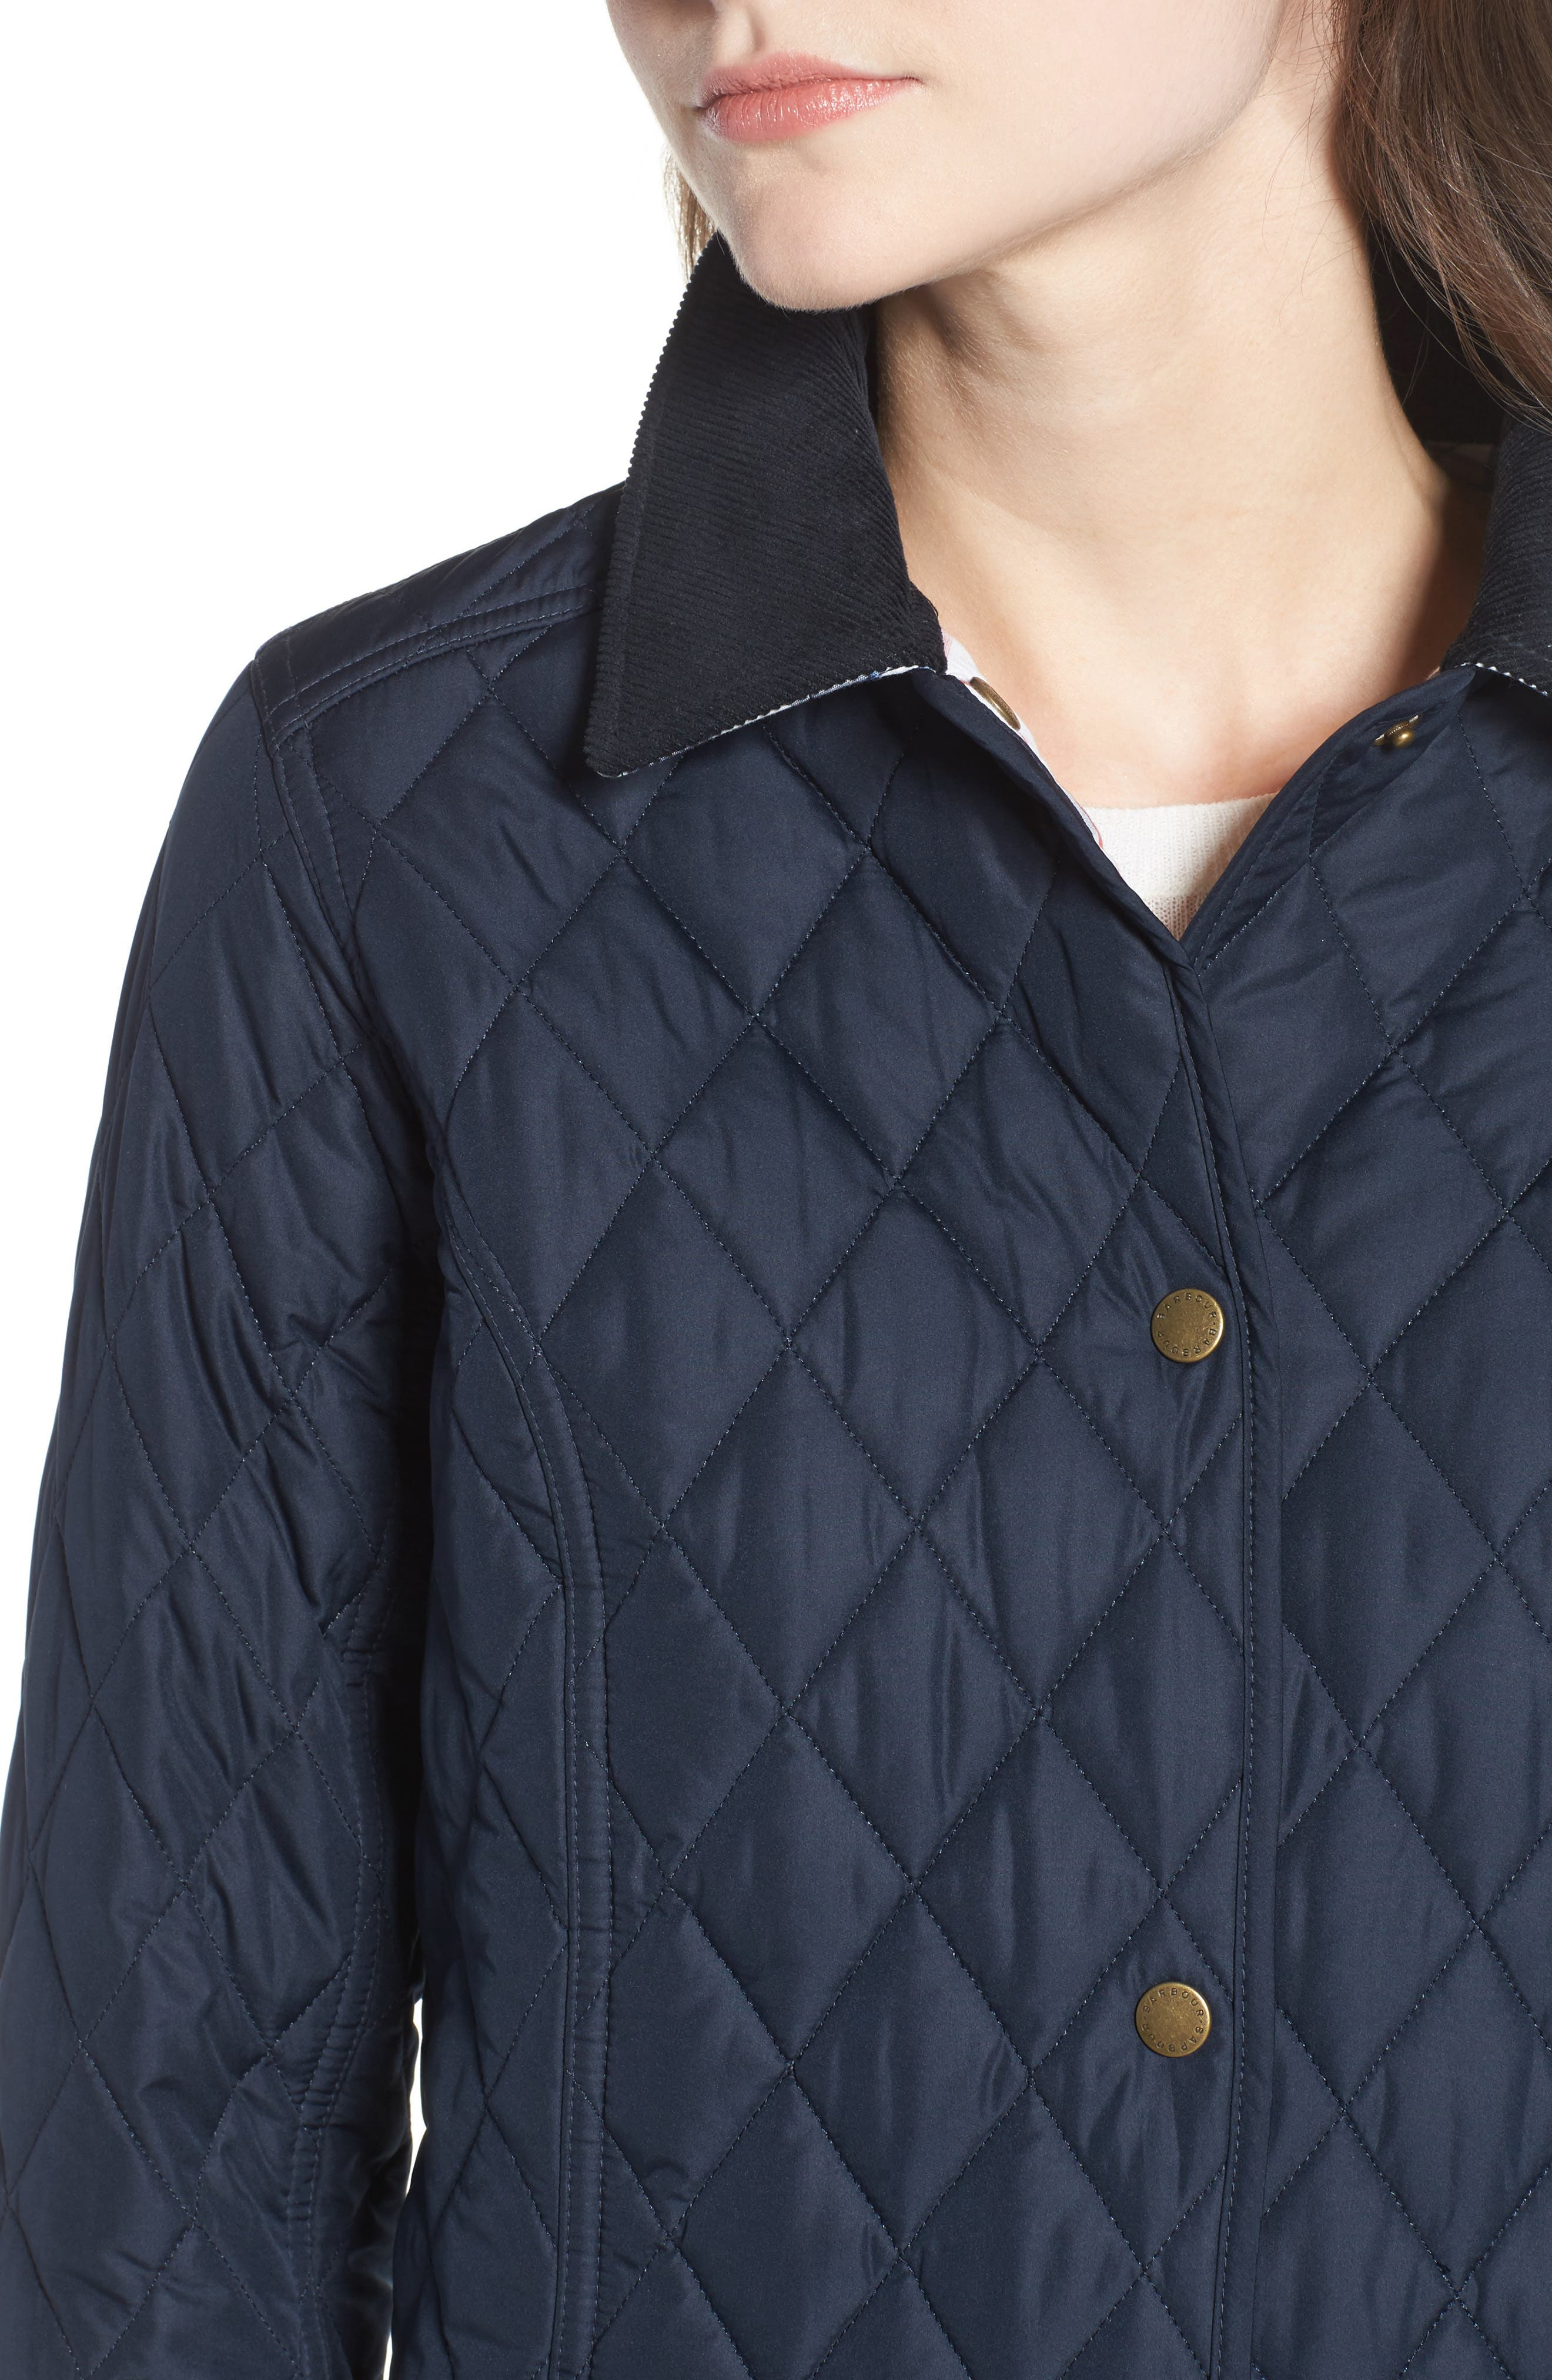 Spring Annandale Quilted Jacket,                             Alternate thumbnail 4, color,                             Navy/ Summer Tartan